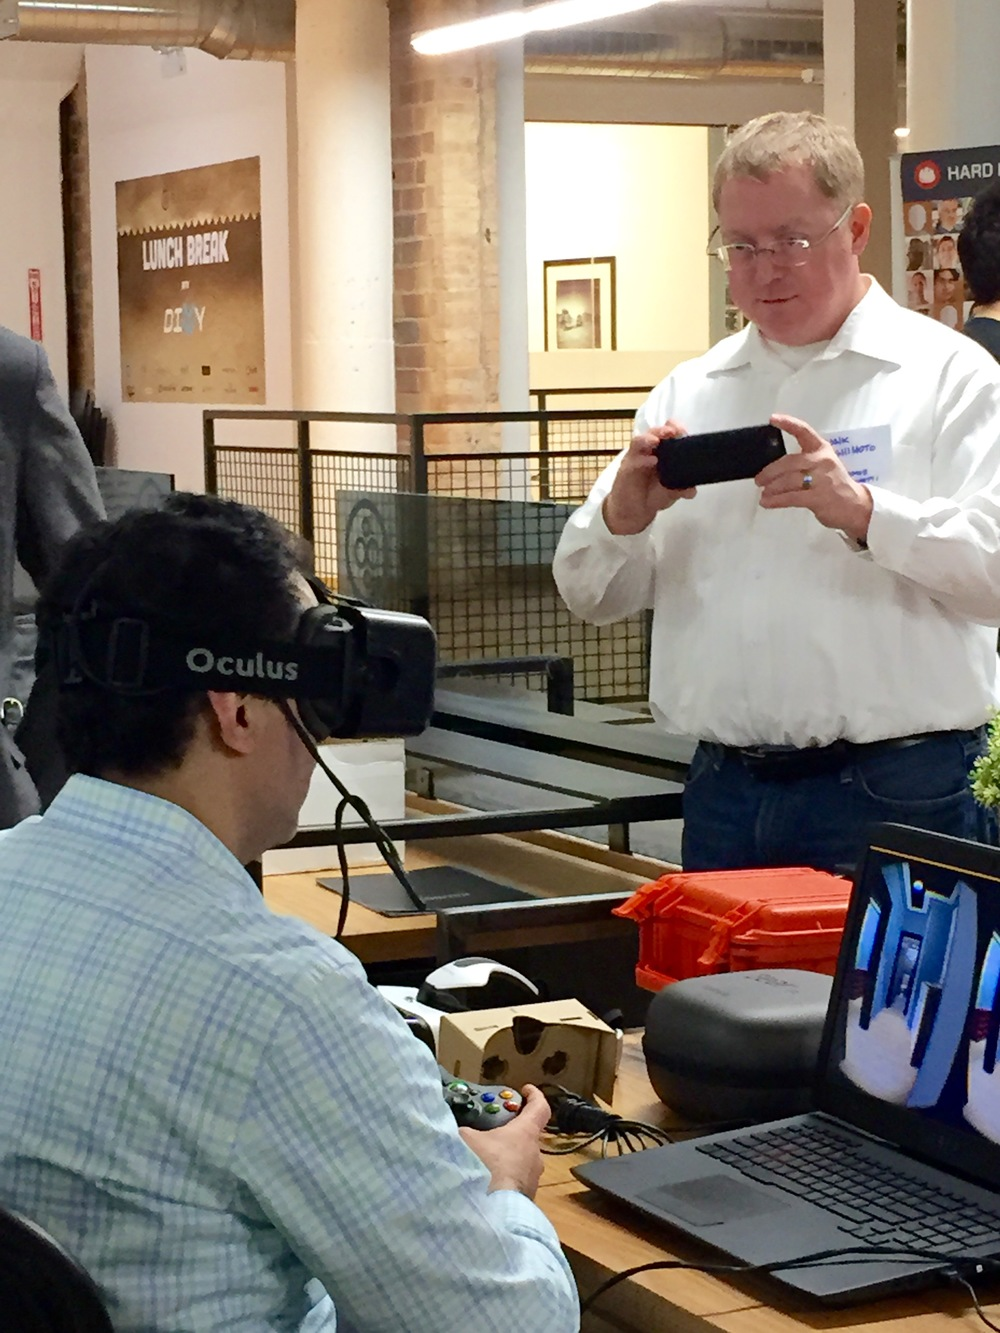 A photo of Thornton-Tomasetti's Frank Hashimoto taking a photo of a colleague in virtual reality inside actual reality. Mind blown?